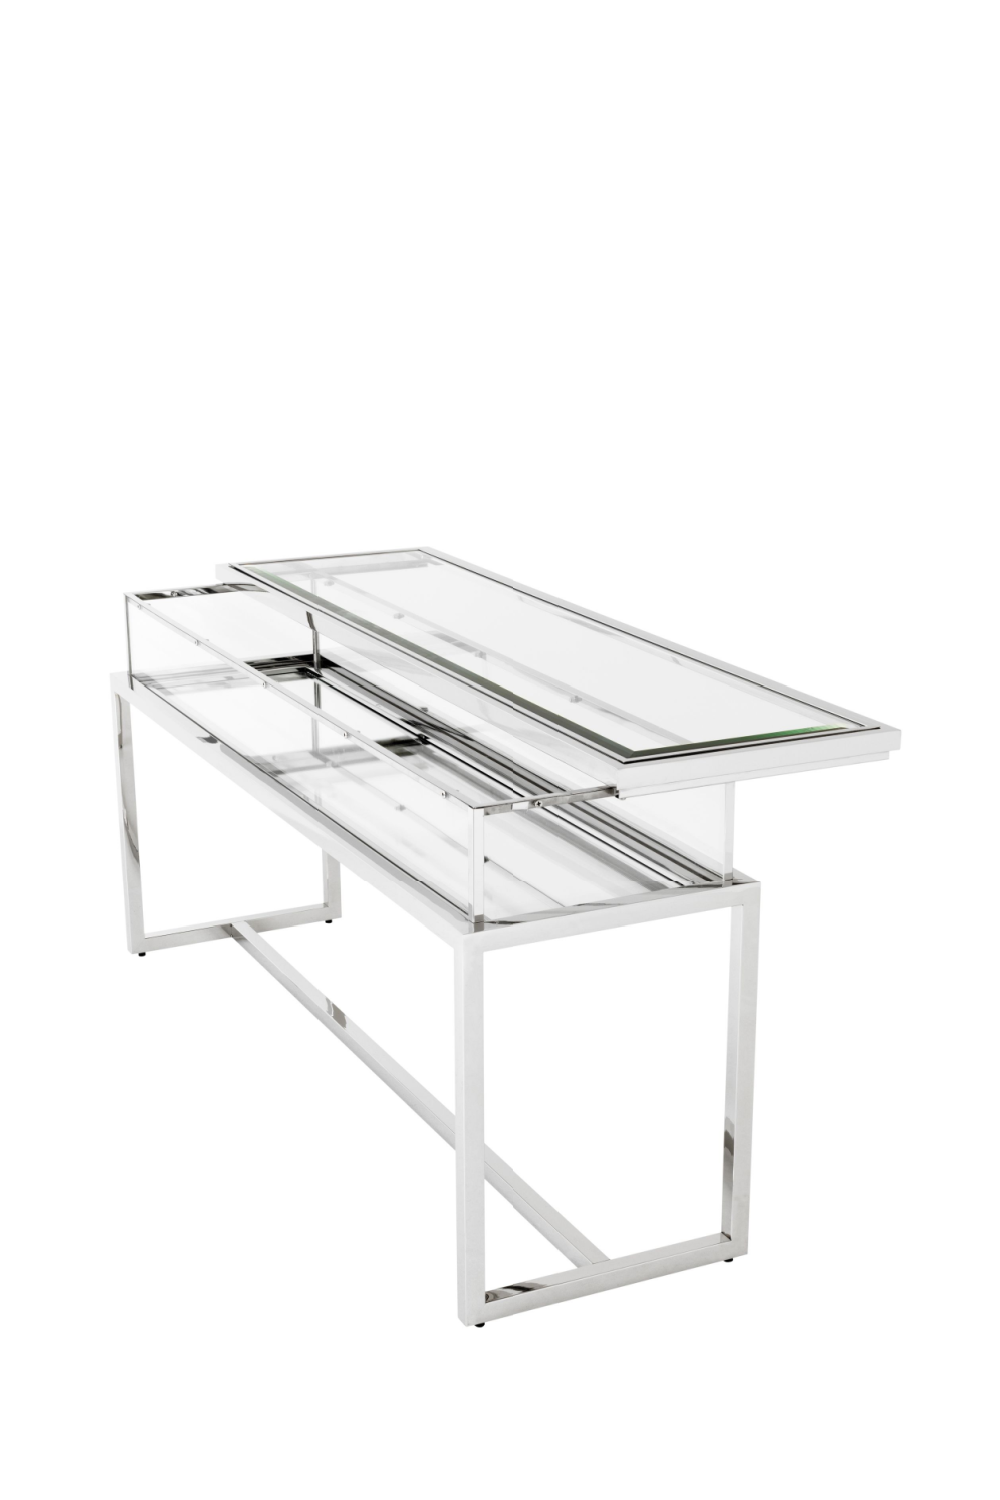 Silver Sliding Top Console Table | Eichholtz Harvey | #1 Eichholtz